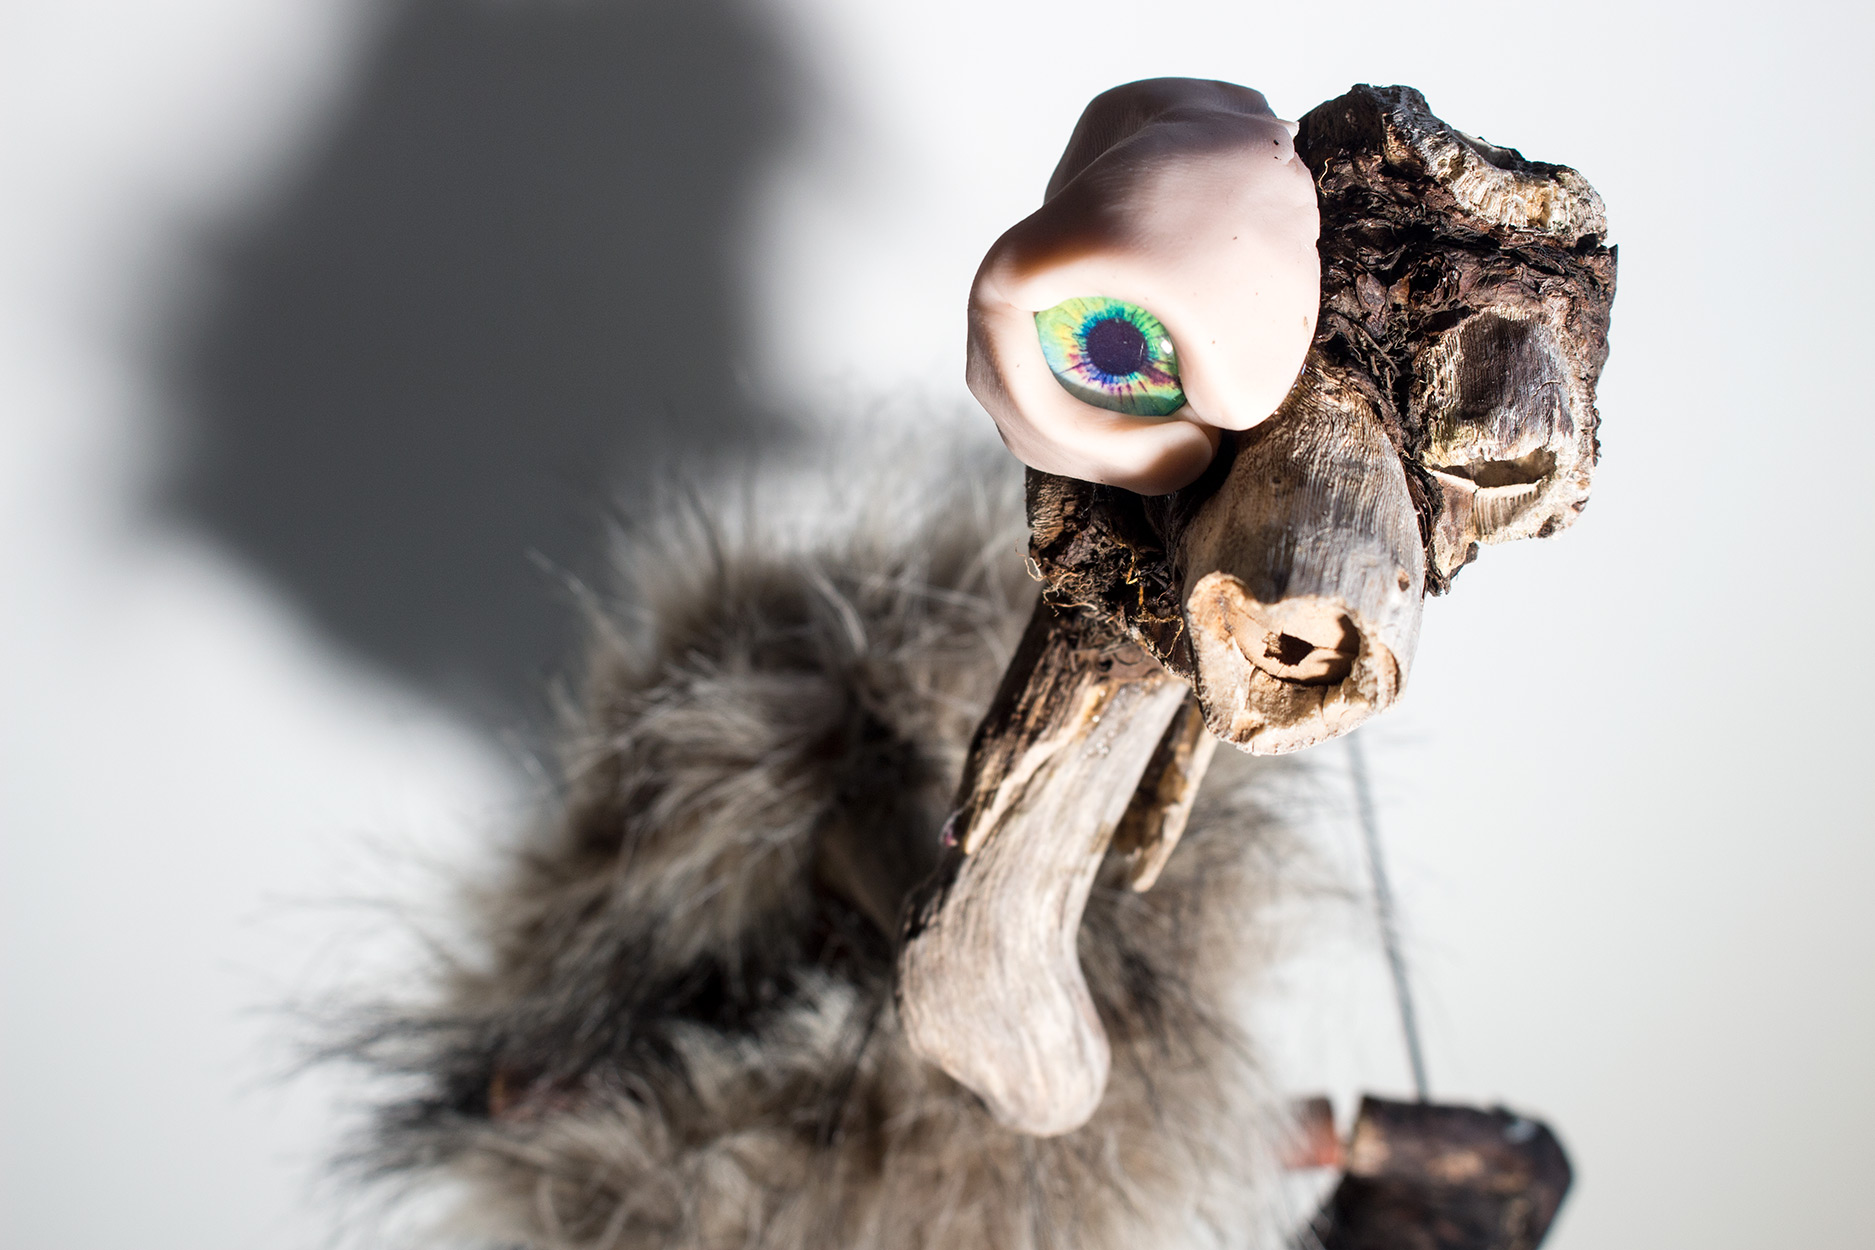 Puppet assembled from found objects